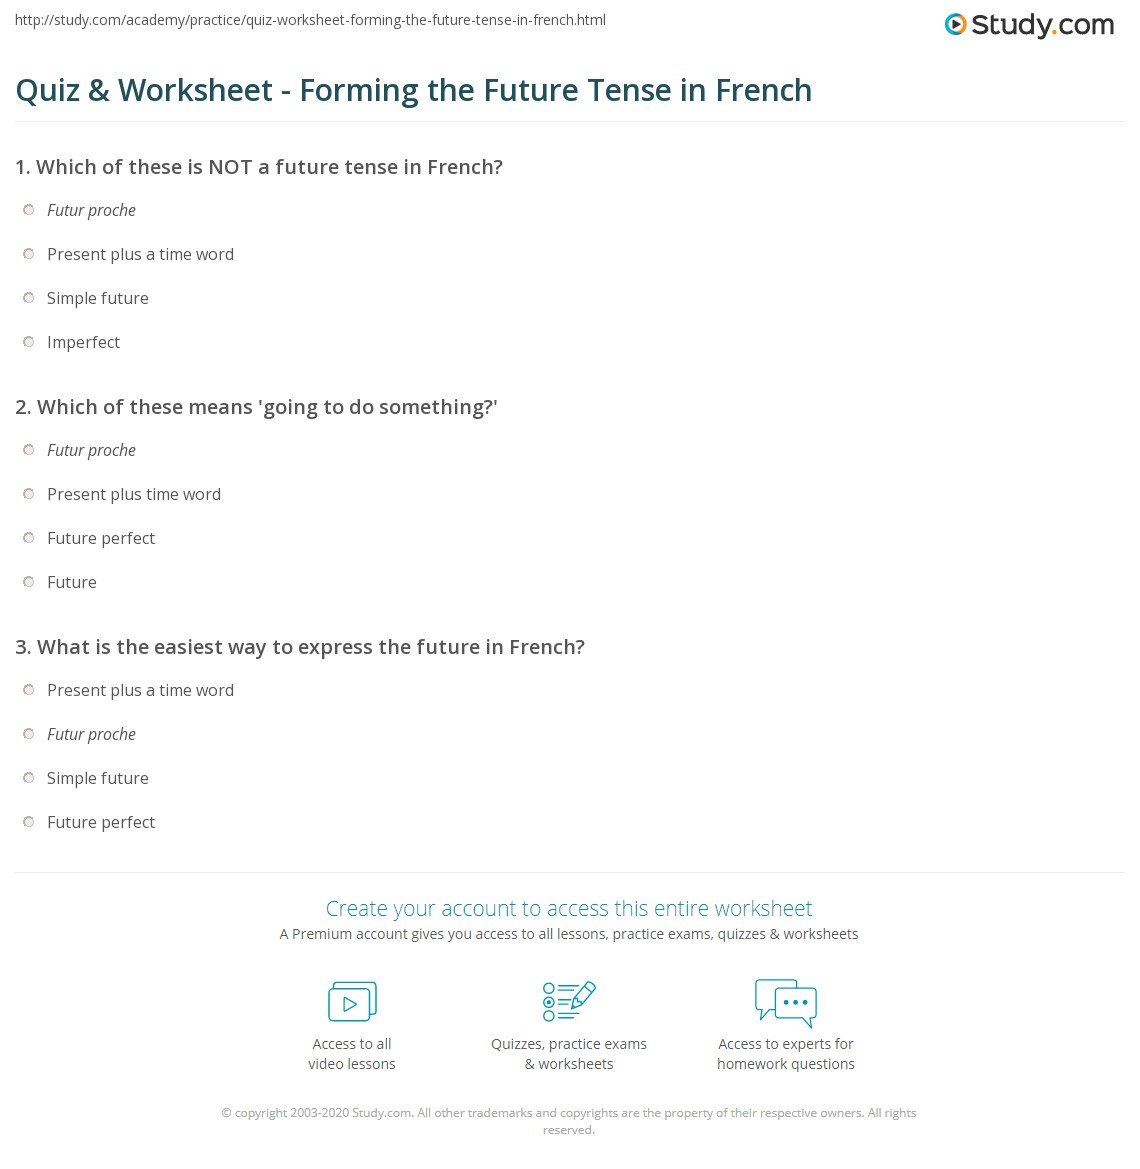 French Future Tense Worksheet